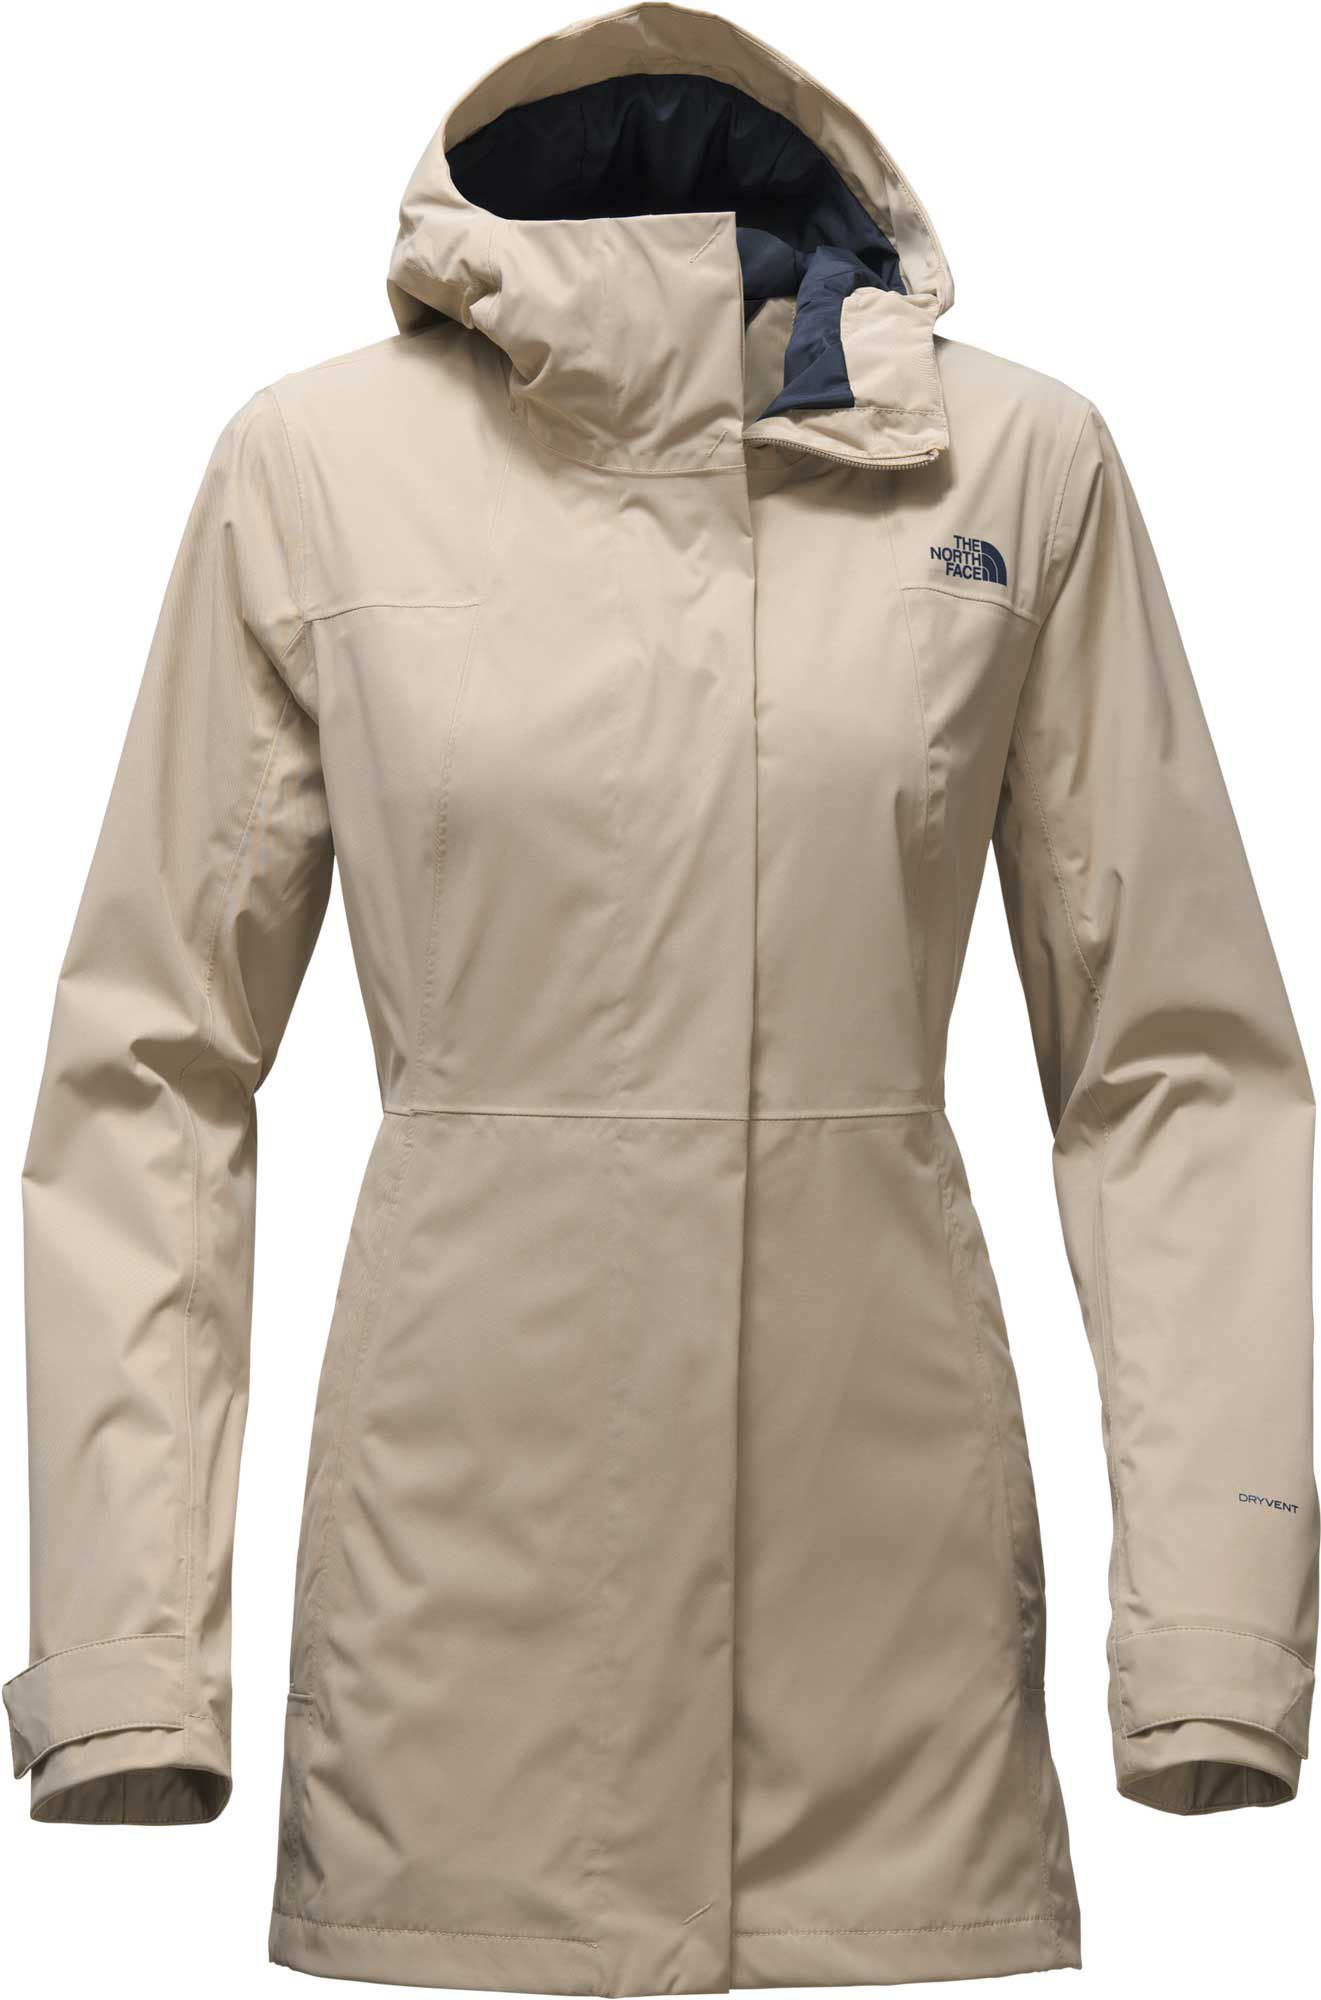 3e8e3ffbbaf4d The North Face Women s City Midi Trench Rain Jacket